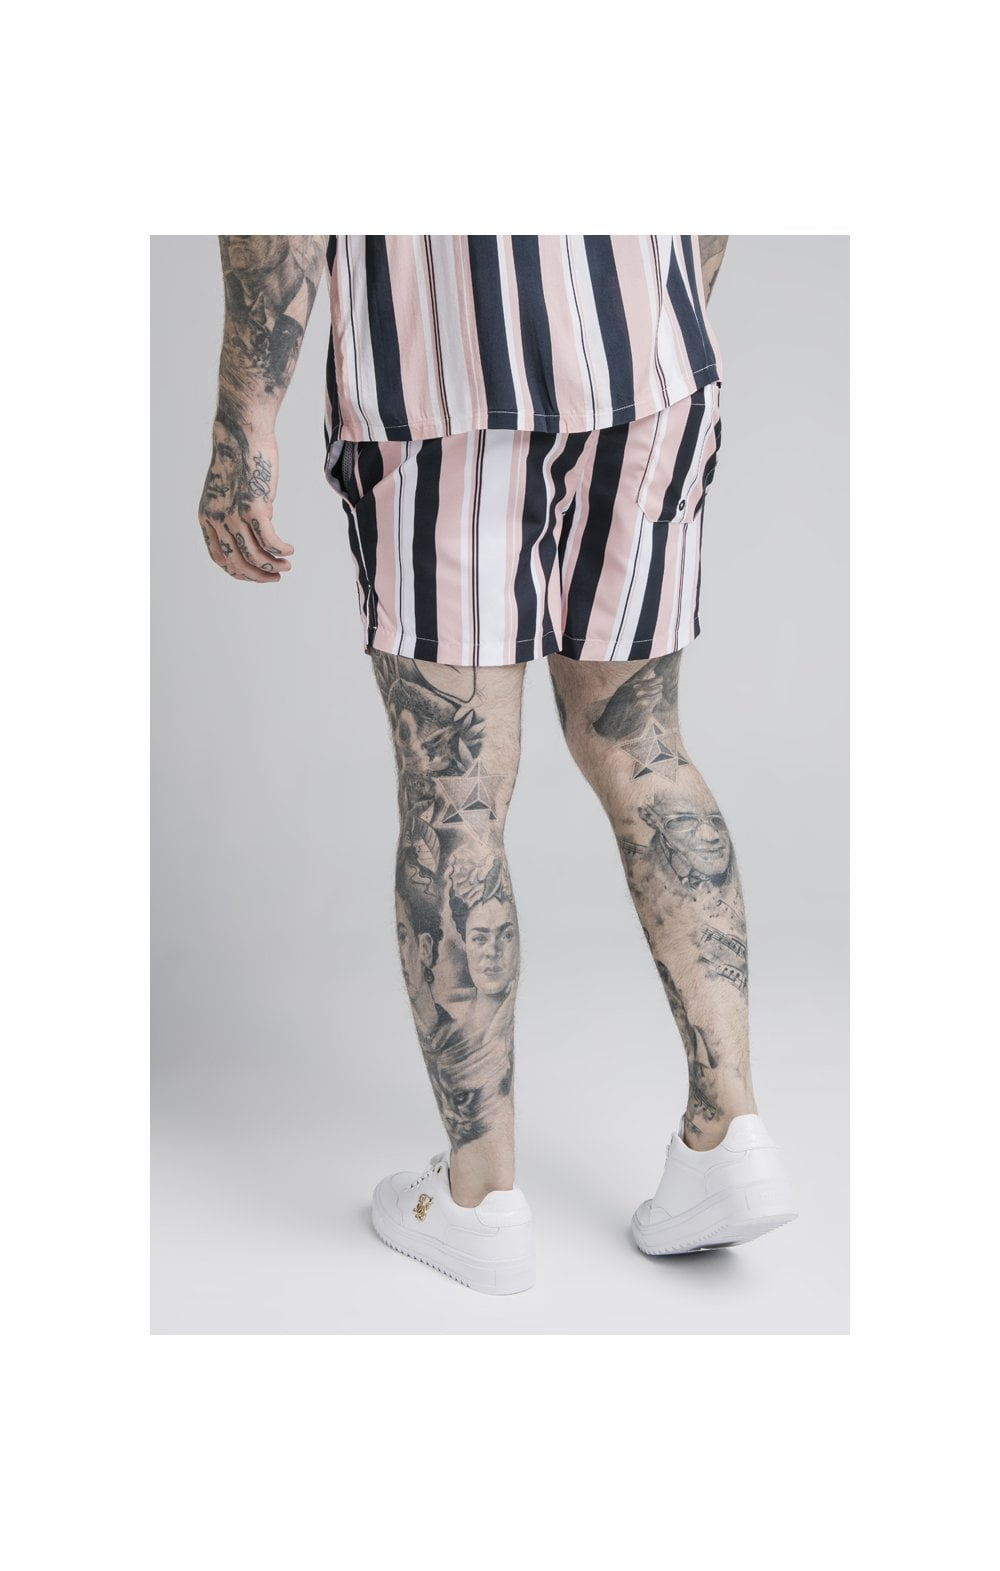 Load image into Gallery viewer, SikSilk Standard Swim Shorts – Navy, Pink & White (6)